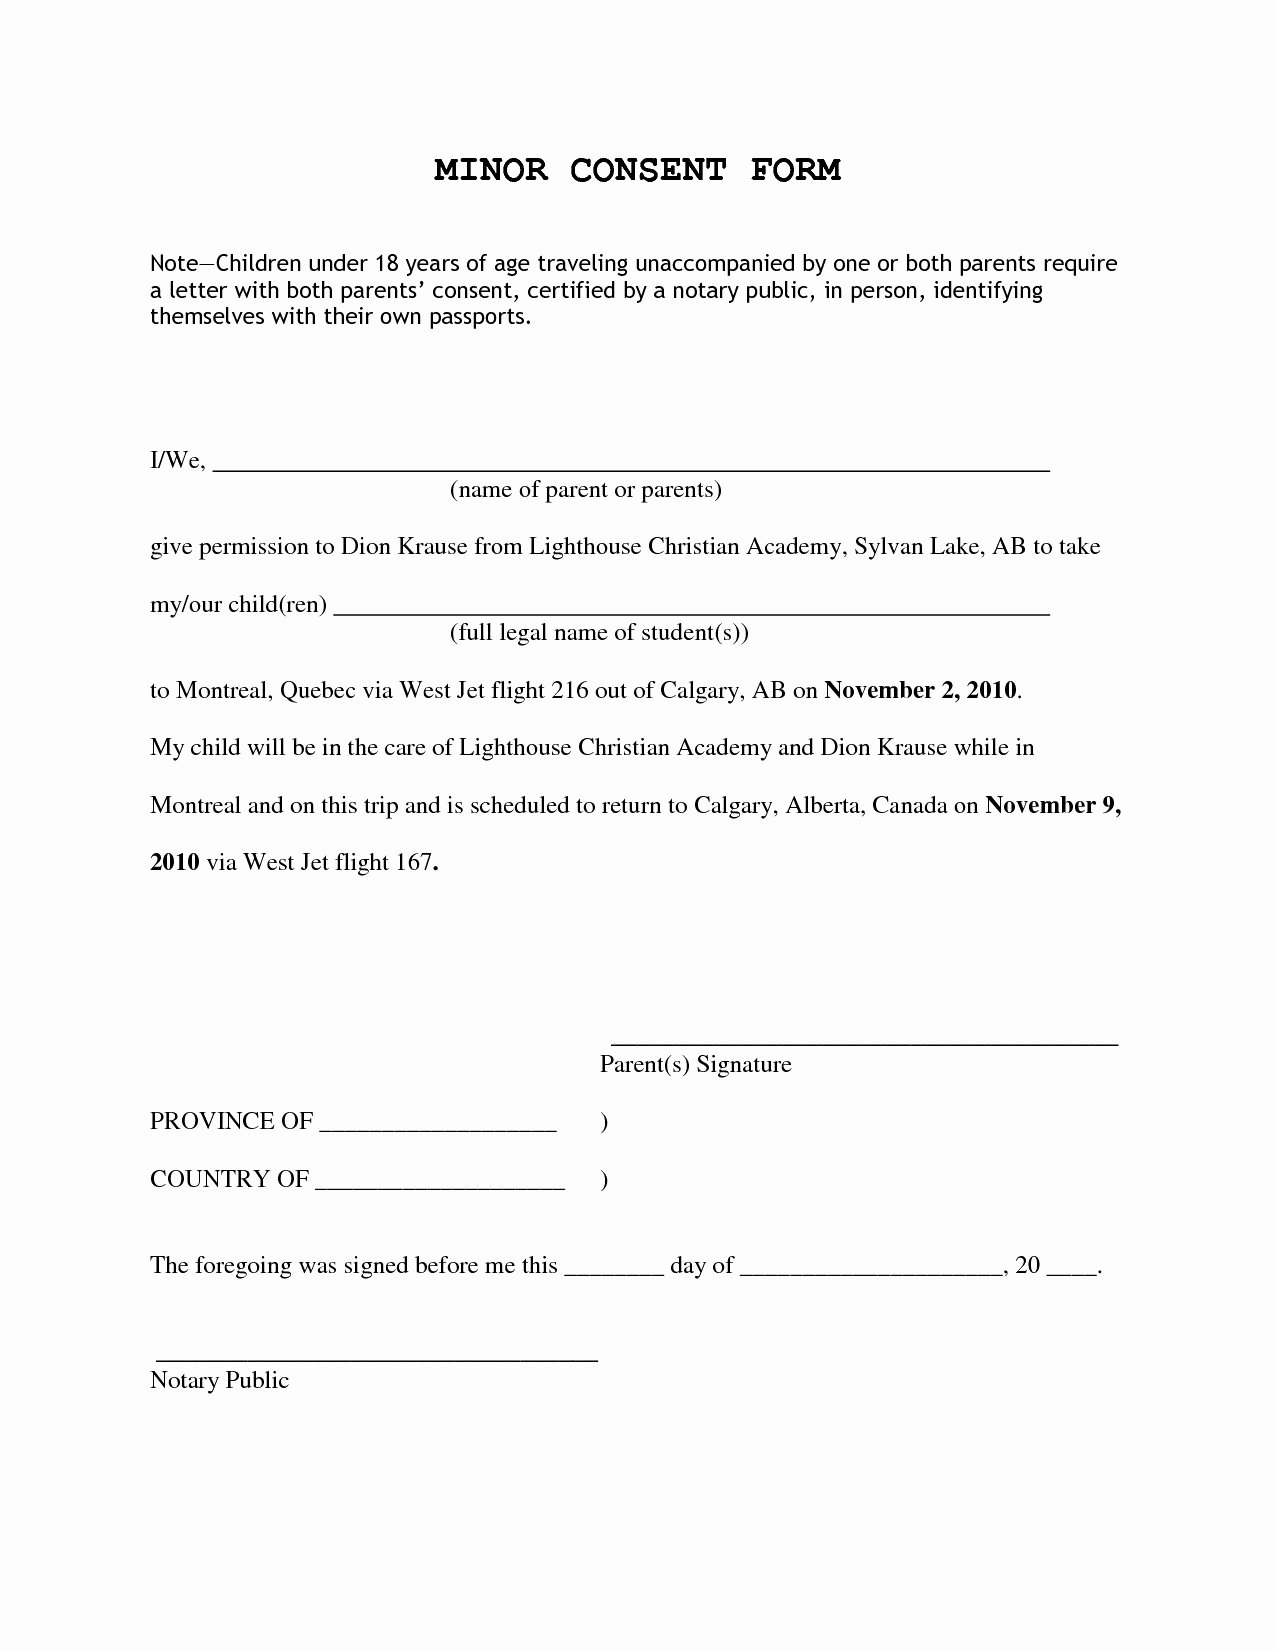 Child Travel Consent form Template Fresh Letter Consent for Travel A Minor Child Template